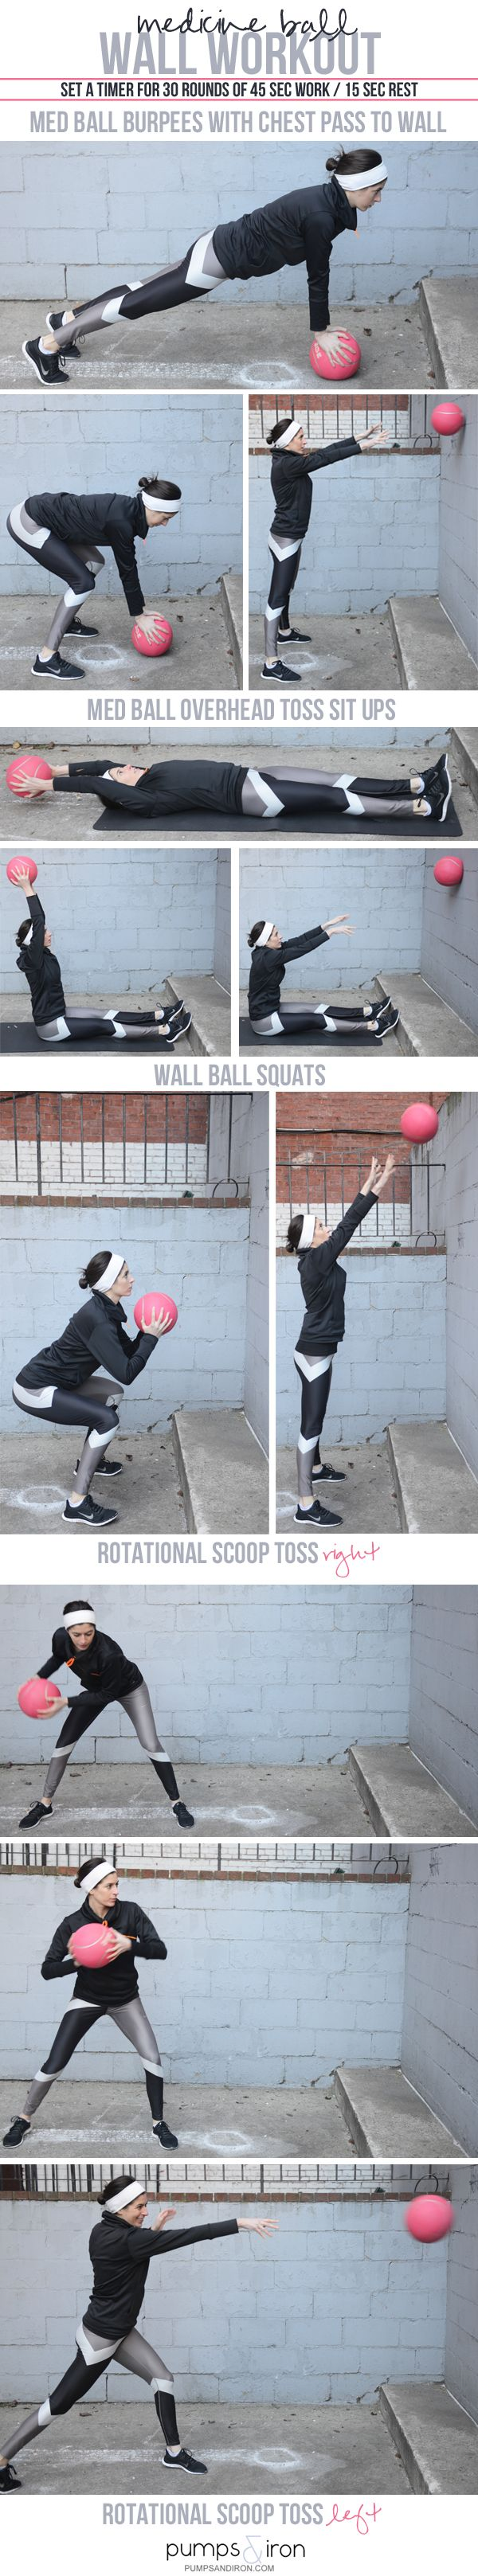 Medicine Ball Wall Workout -- 30 minutes of dynamic, power-building movements